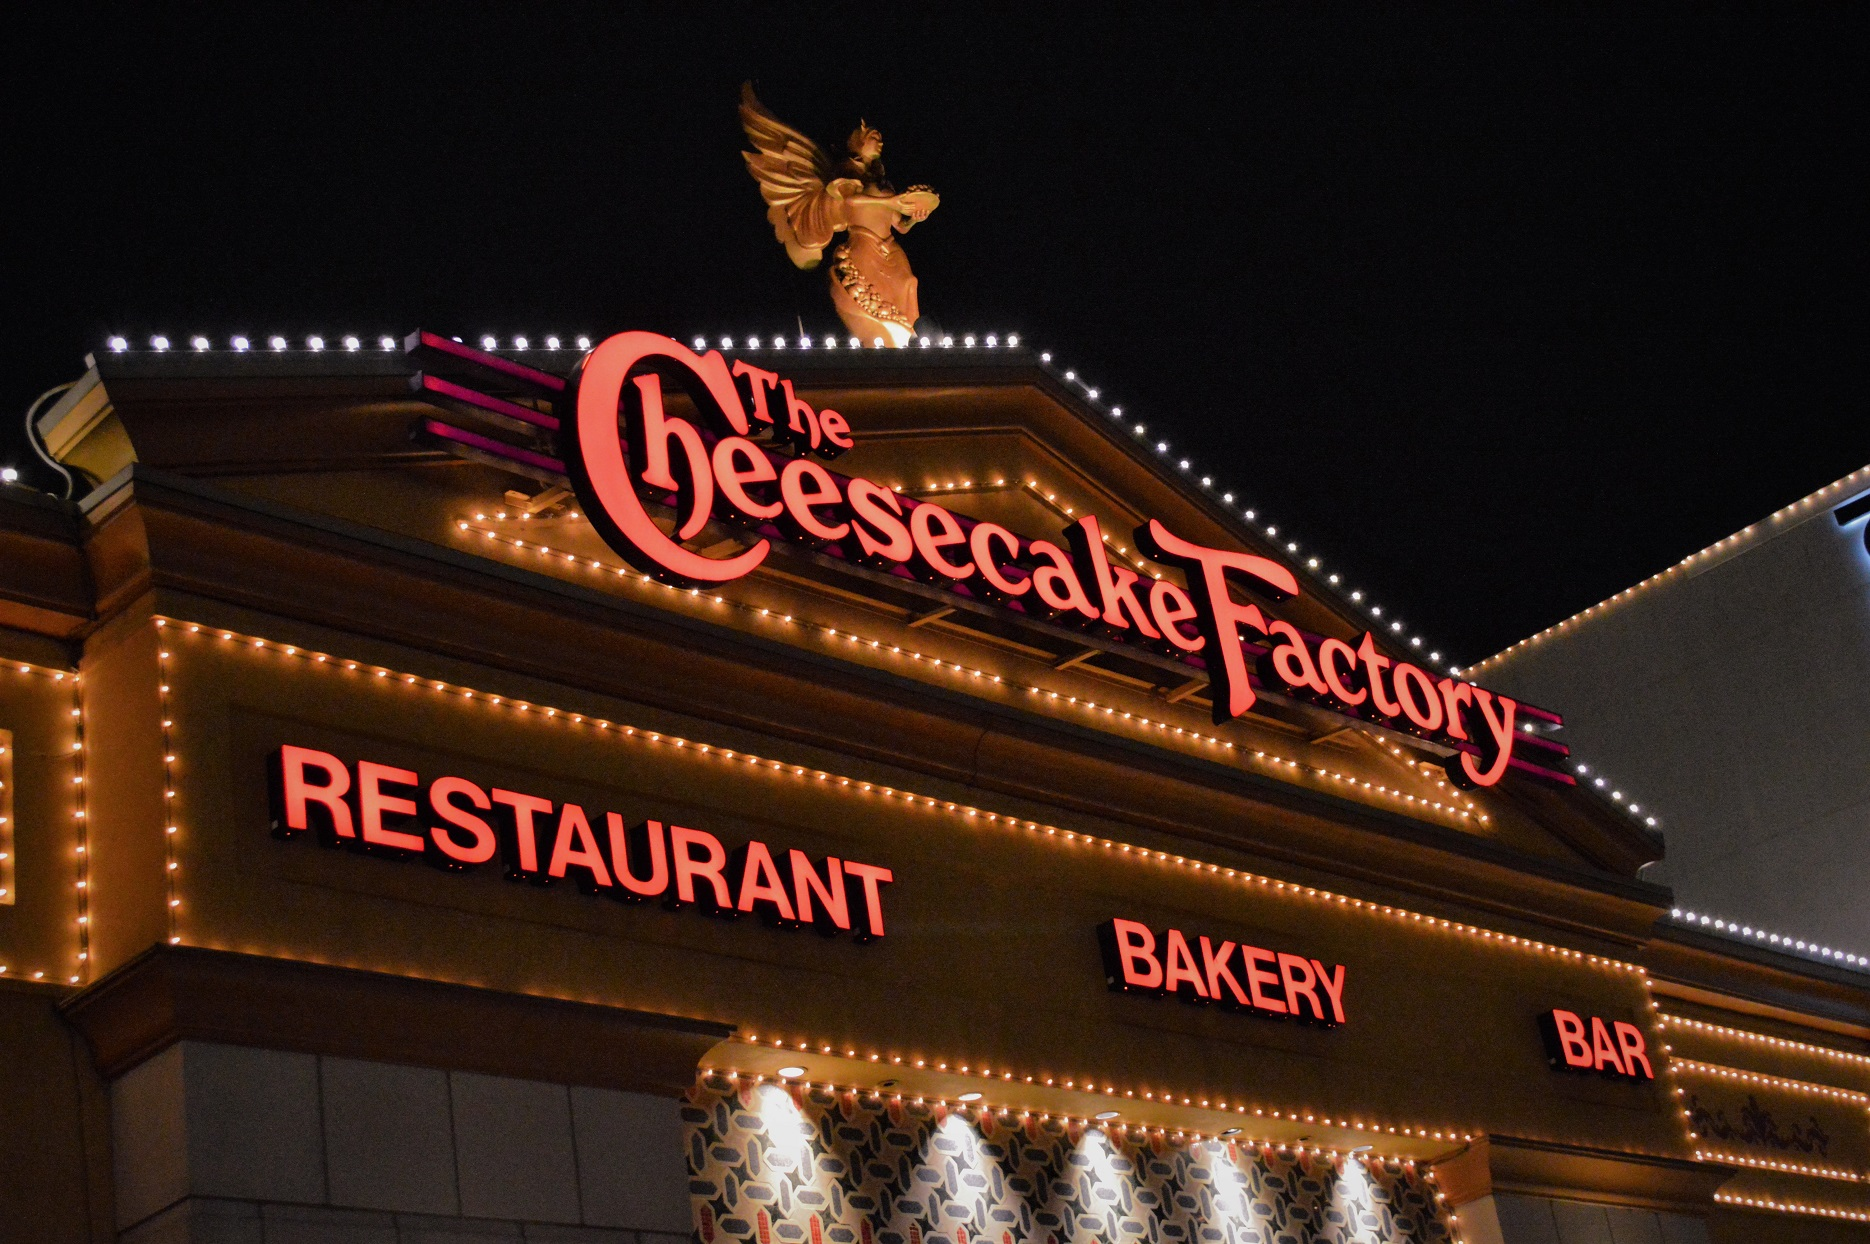 The Cheesecake Factory Is Giving Away Free Food for April Fool's Day (and It's Not a Prank)